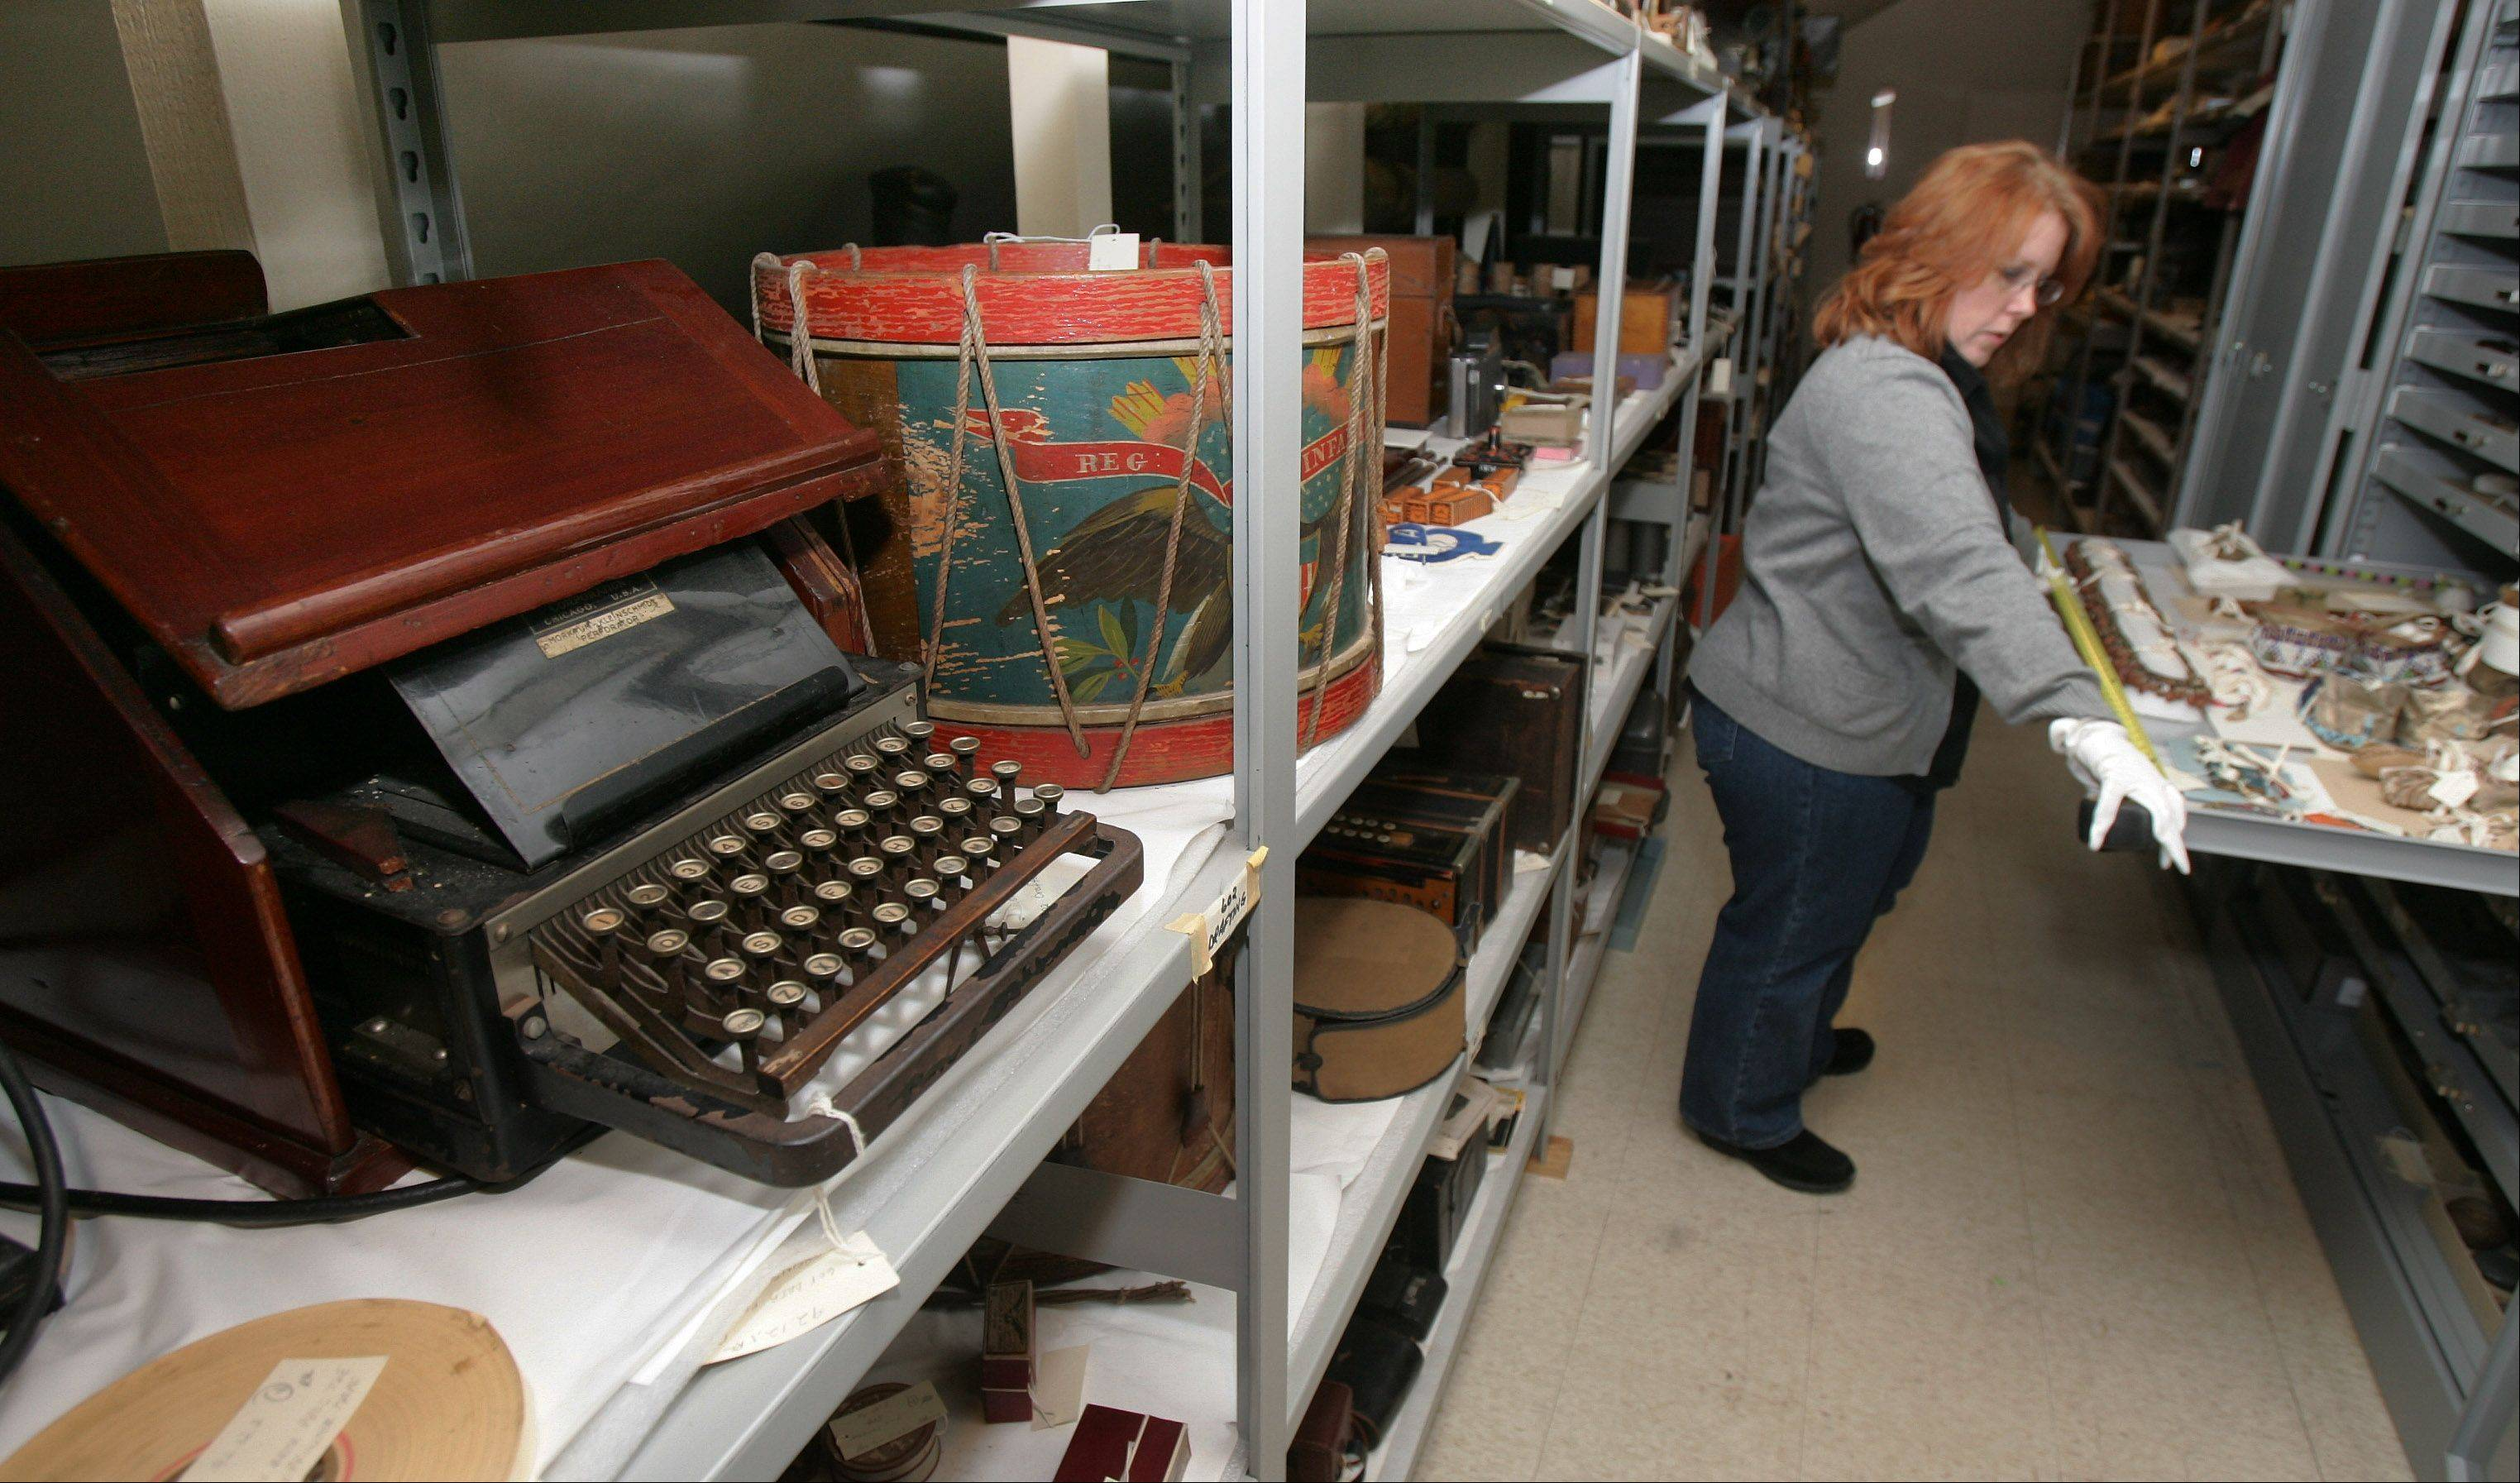 Images: Behind the scenes at the Lake County Discovery Museum